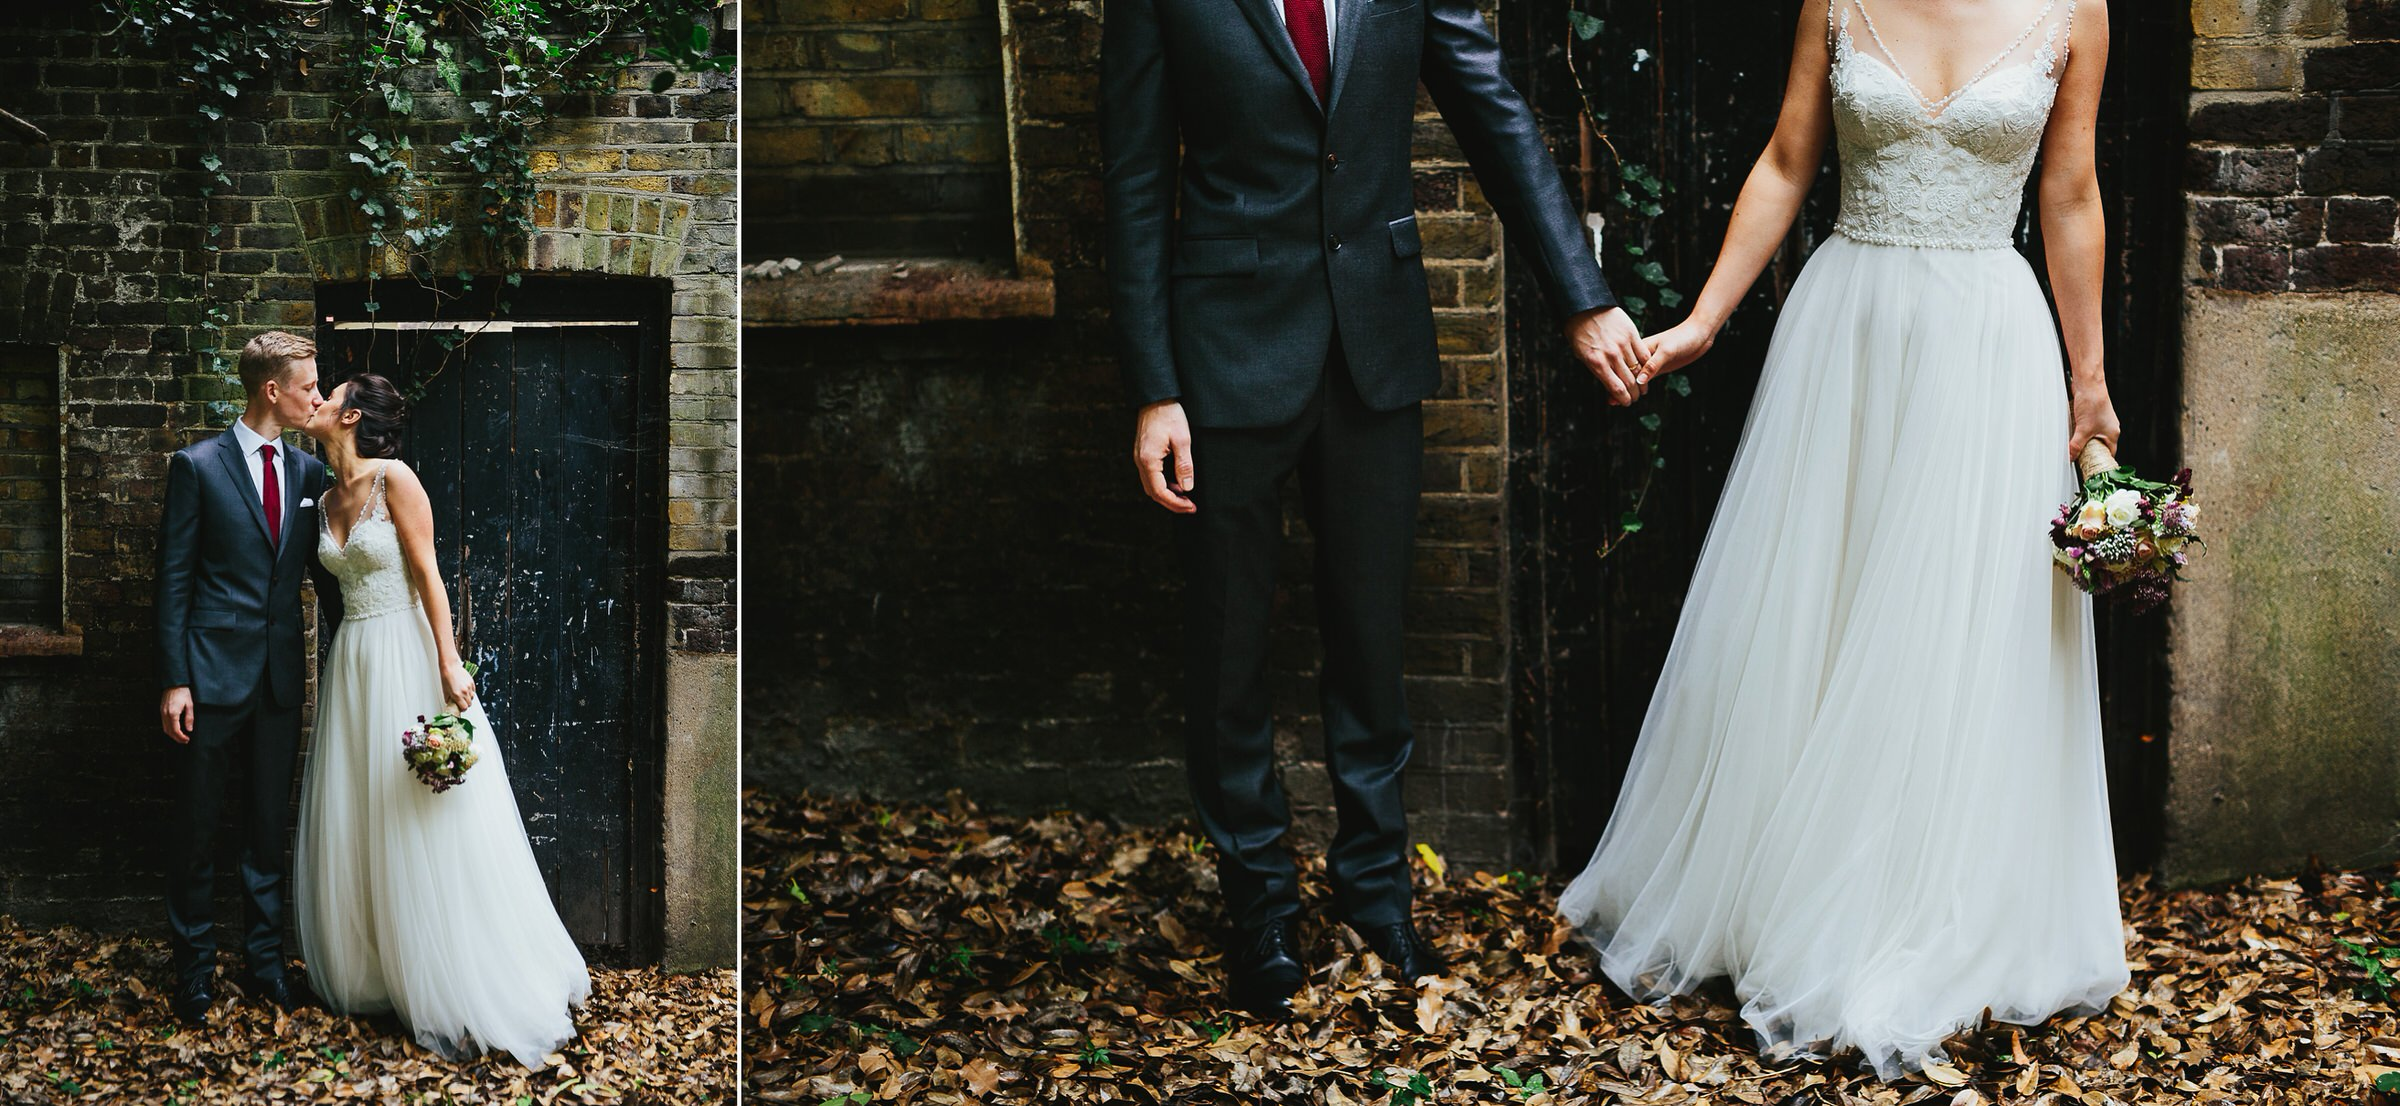 Southwark Register Office wedding - Helen & Simon